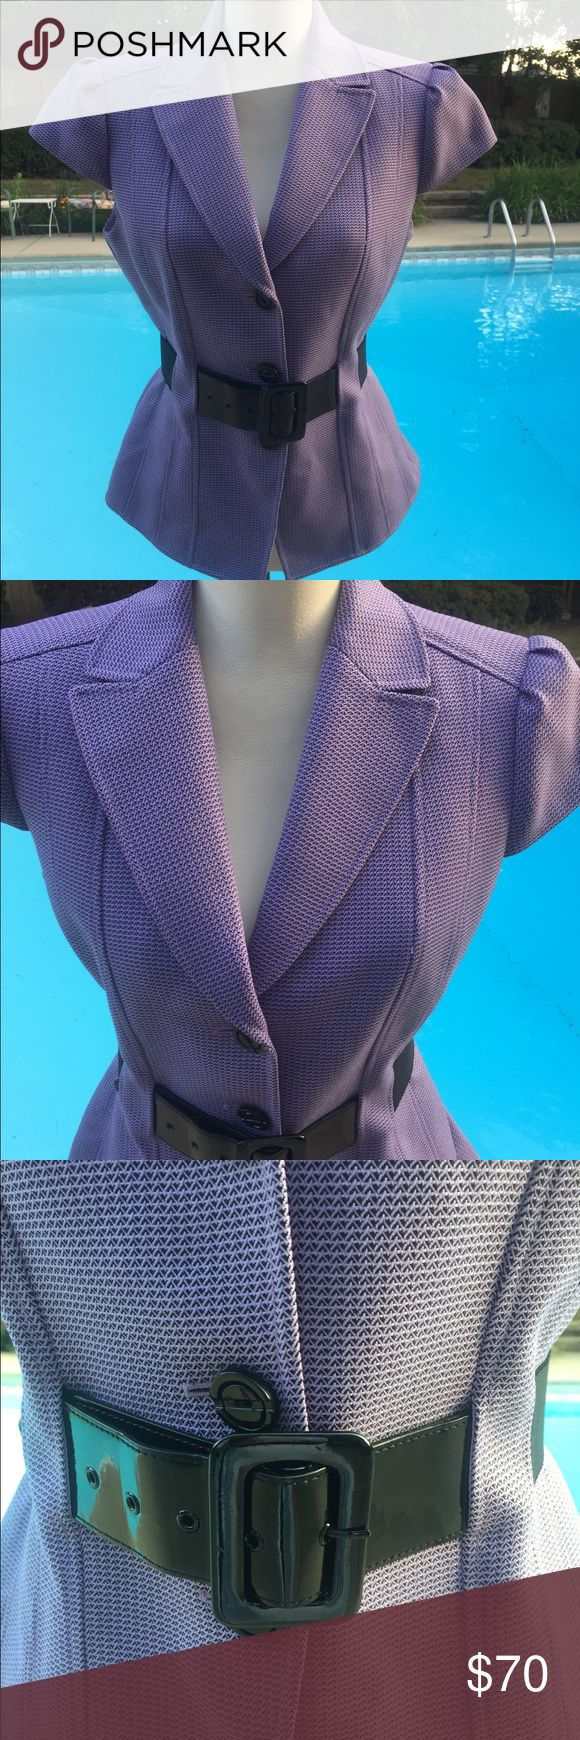 💜💜GORGEOUS Tahari short sleeve blazer NWOT Tahari GORGEOUS purple and black short sleeve fully lined blazer - Patton leather look belt with elastic sides giving extra comfort. This looks amazing with black pants/skirt!!!  Classy and sophisticated!  NWOT Tahari Jackets & Coats Blazers